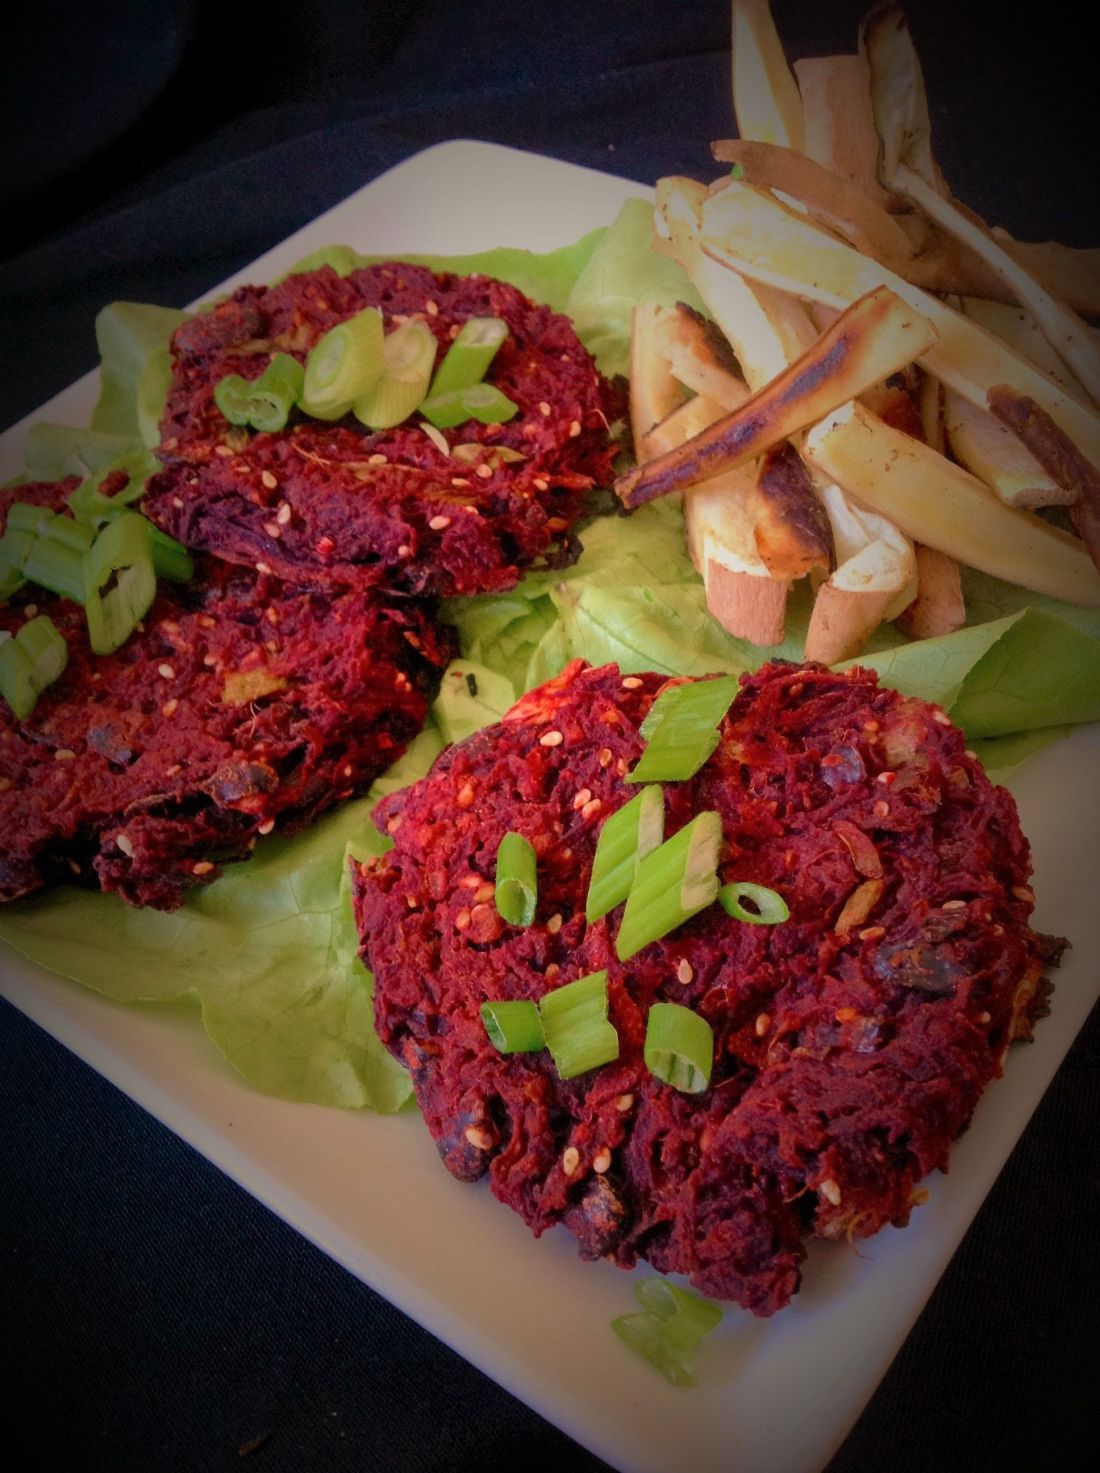 Korean Red Beet Teriyaki Veggie Burgers - Healthy, Plant-Based, Oil-Free, Gluten-Free Vegan Dinner Recipe